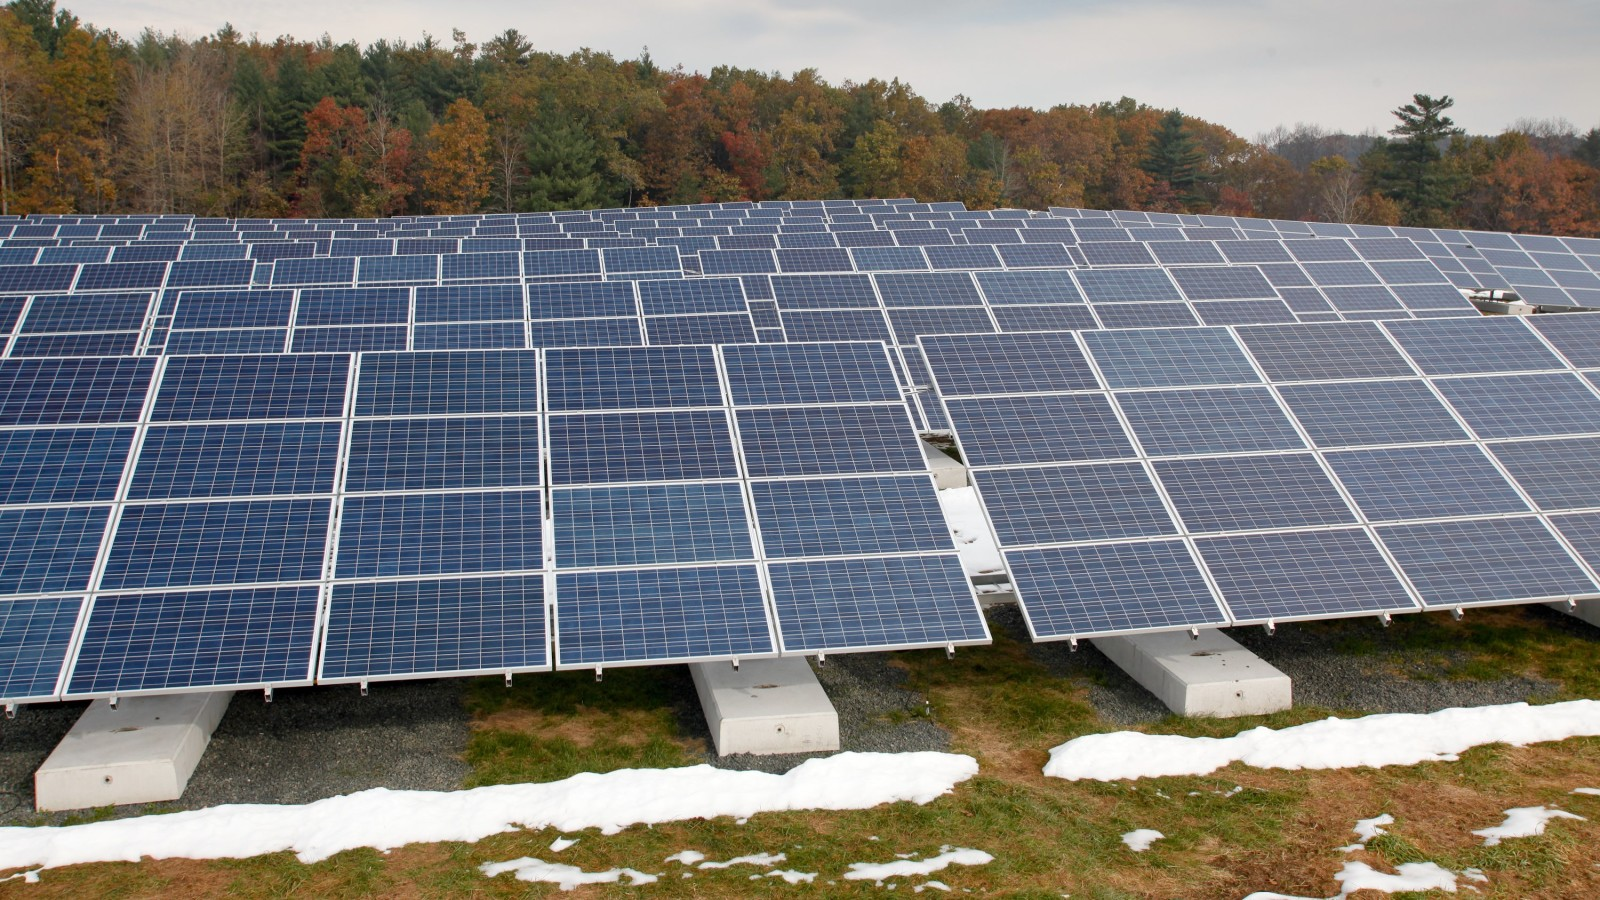 Downing Key to Passage of Solid Solar Bill